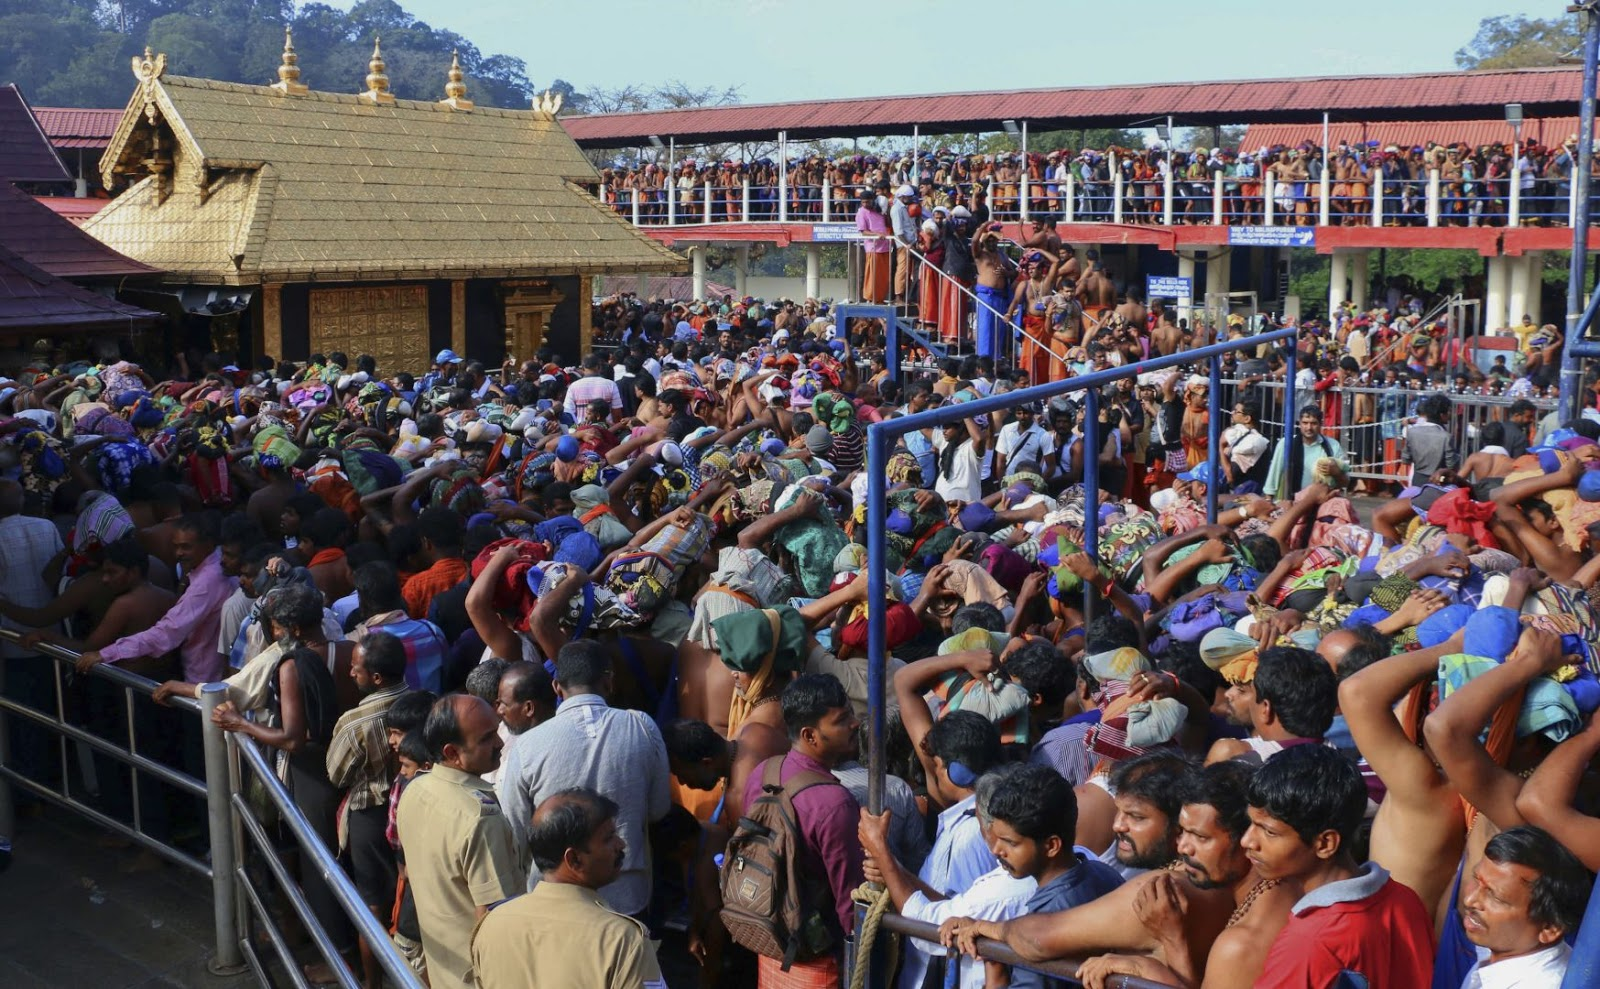 Alert issued by Kerala police - Poison food and water at Sabarimala temple, new threat from ISIS states